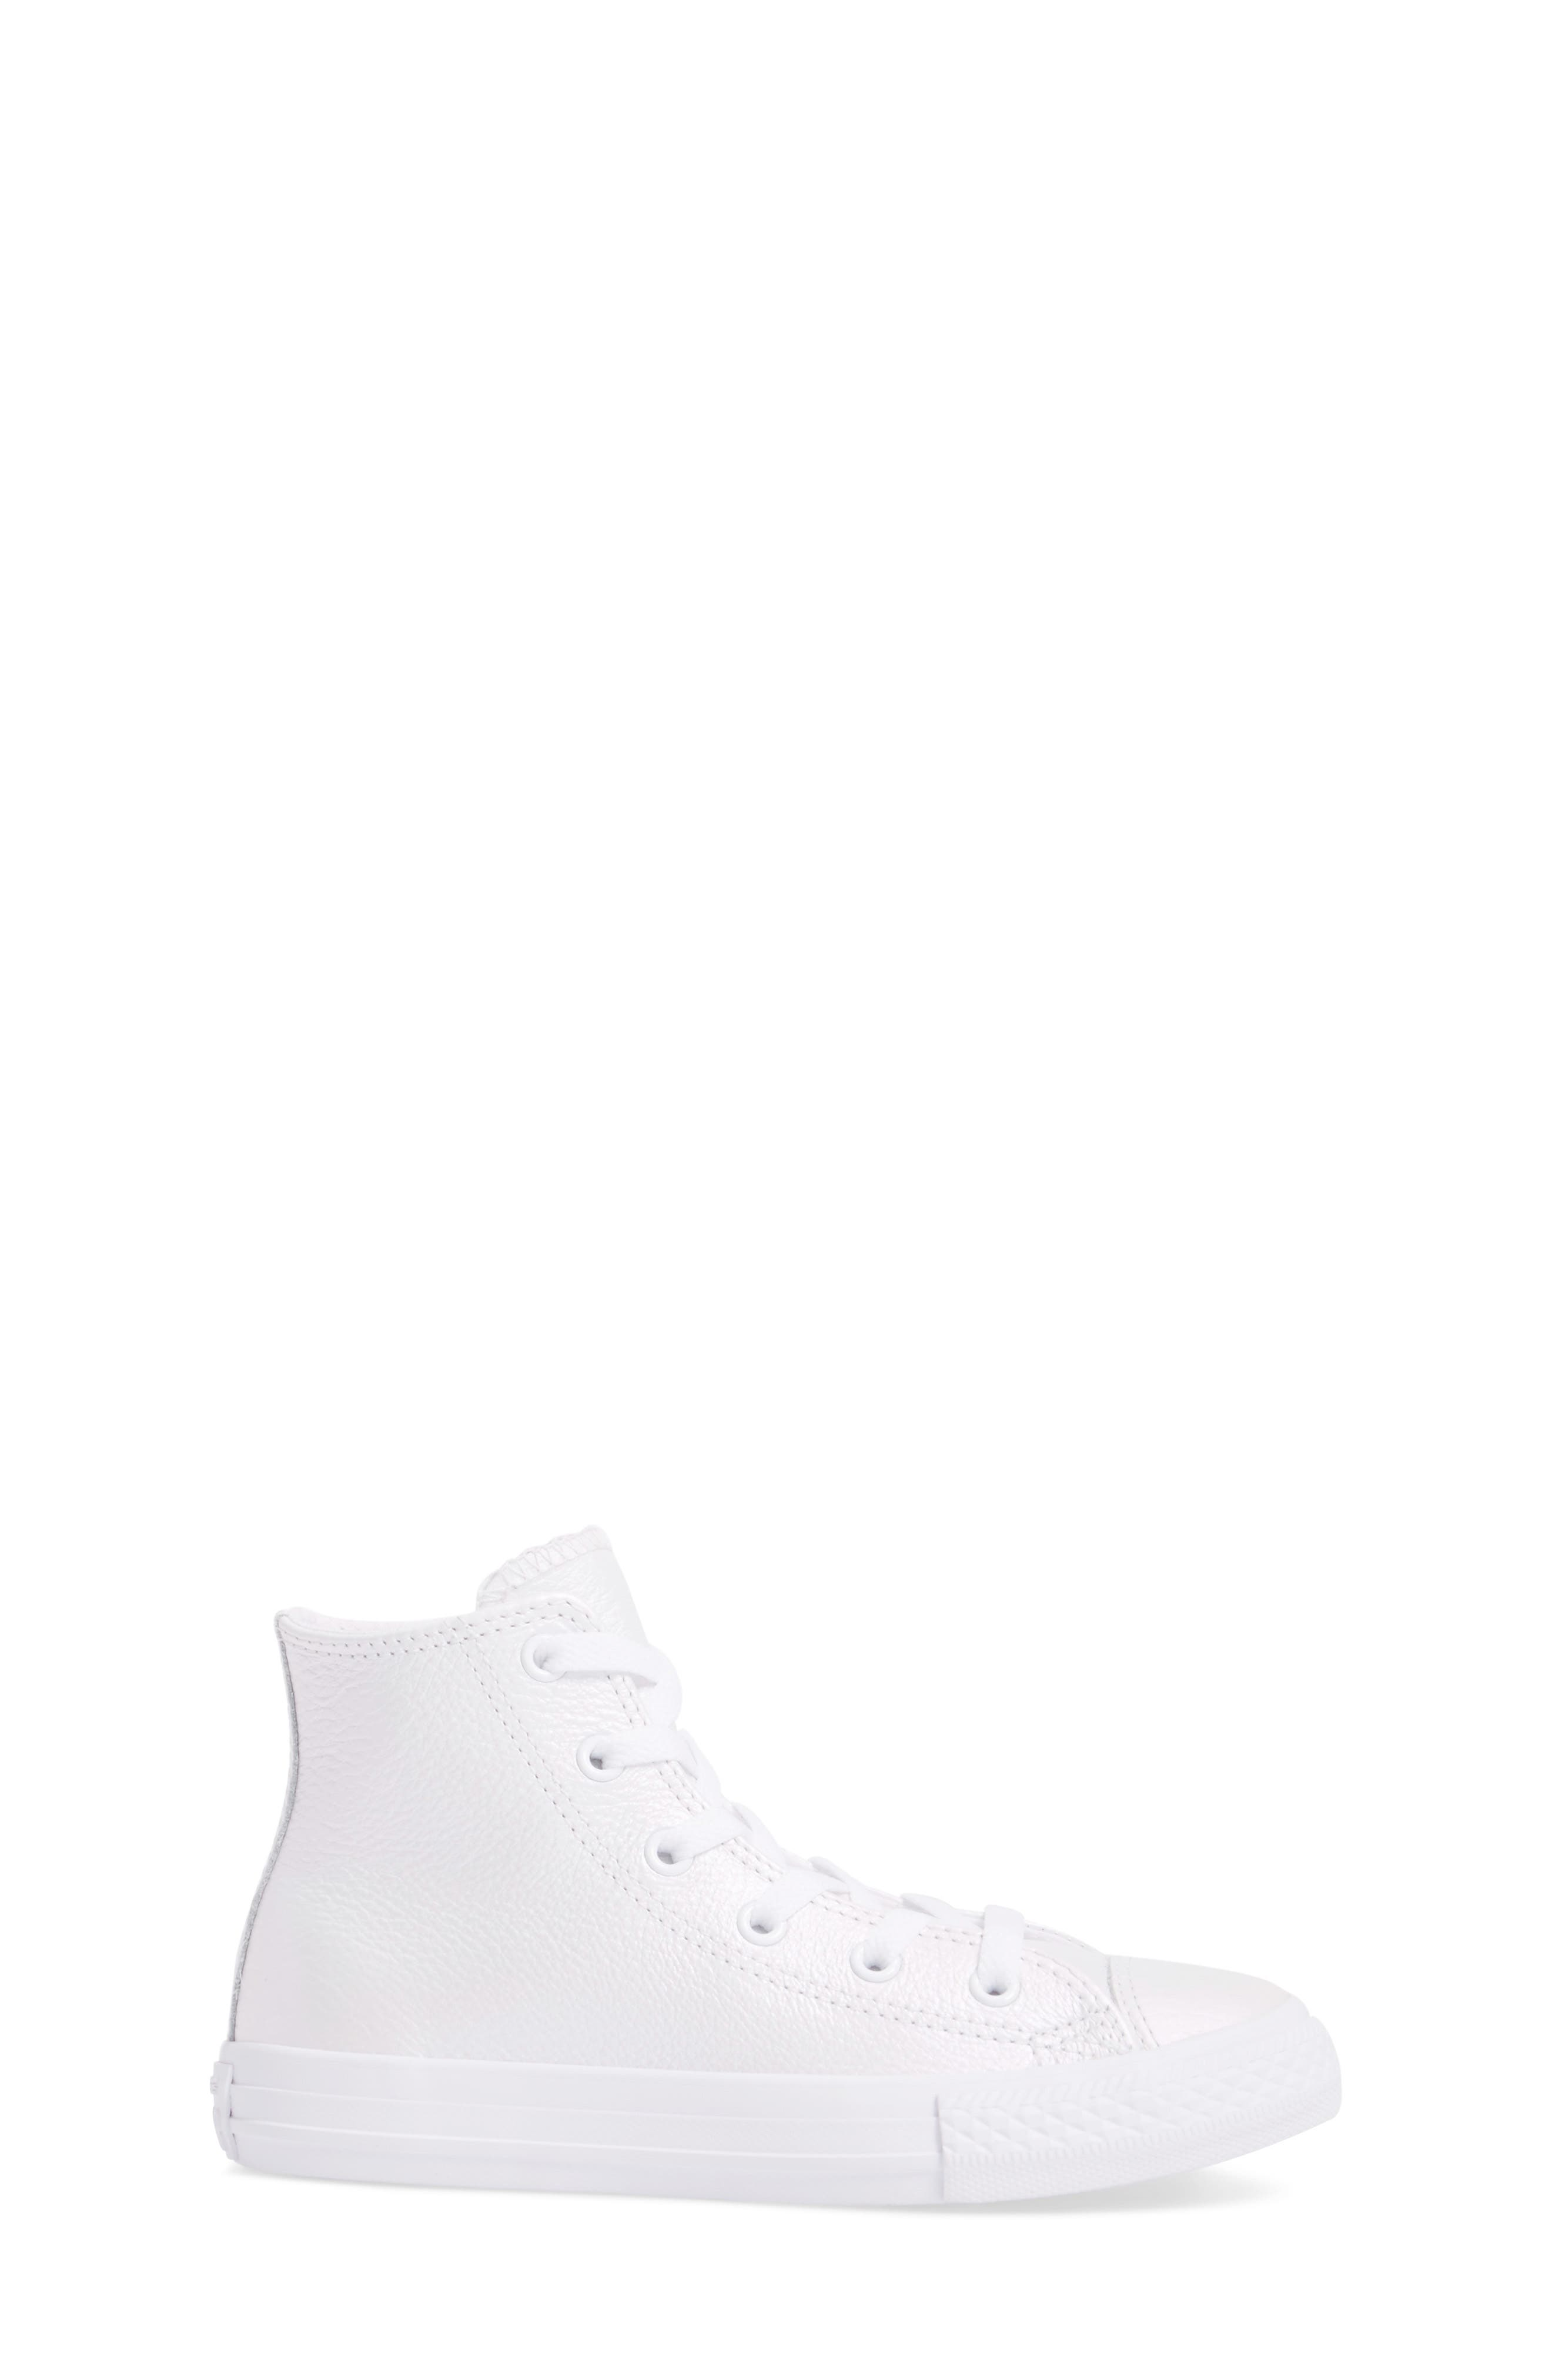 Chuck Taylor<sup>®</sup> All Star<sup>®</sup> Iridescent Leather High Top Sneaker,                             Alternate thumbnail 3, color,                             White Leather